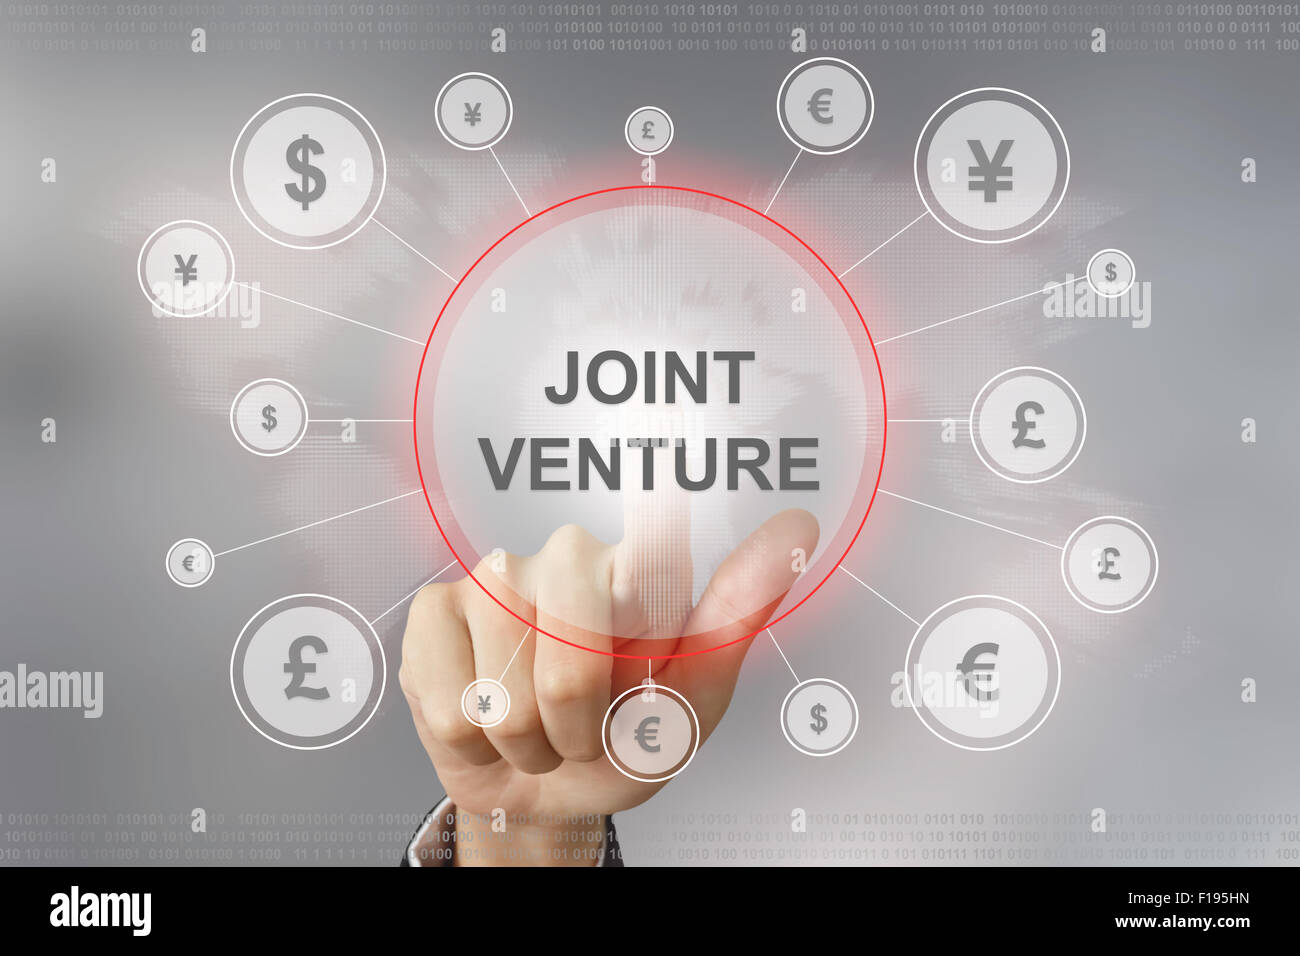 hand pushing joint venture button with global networking concept - Stock Image